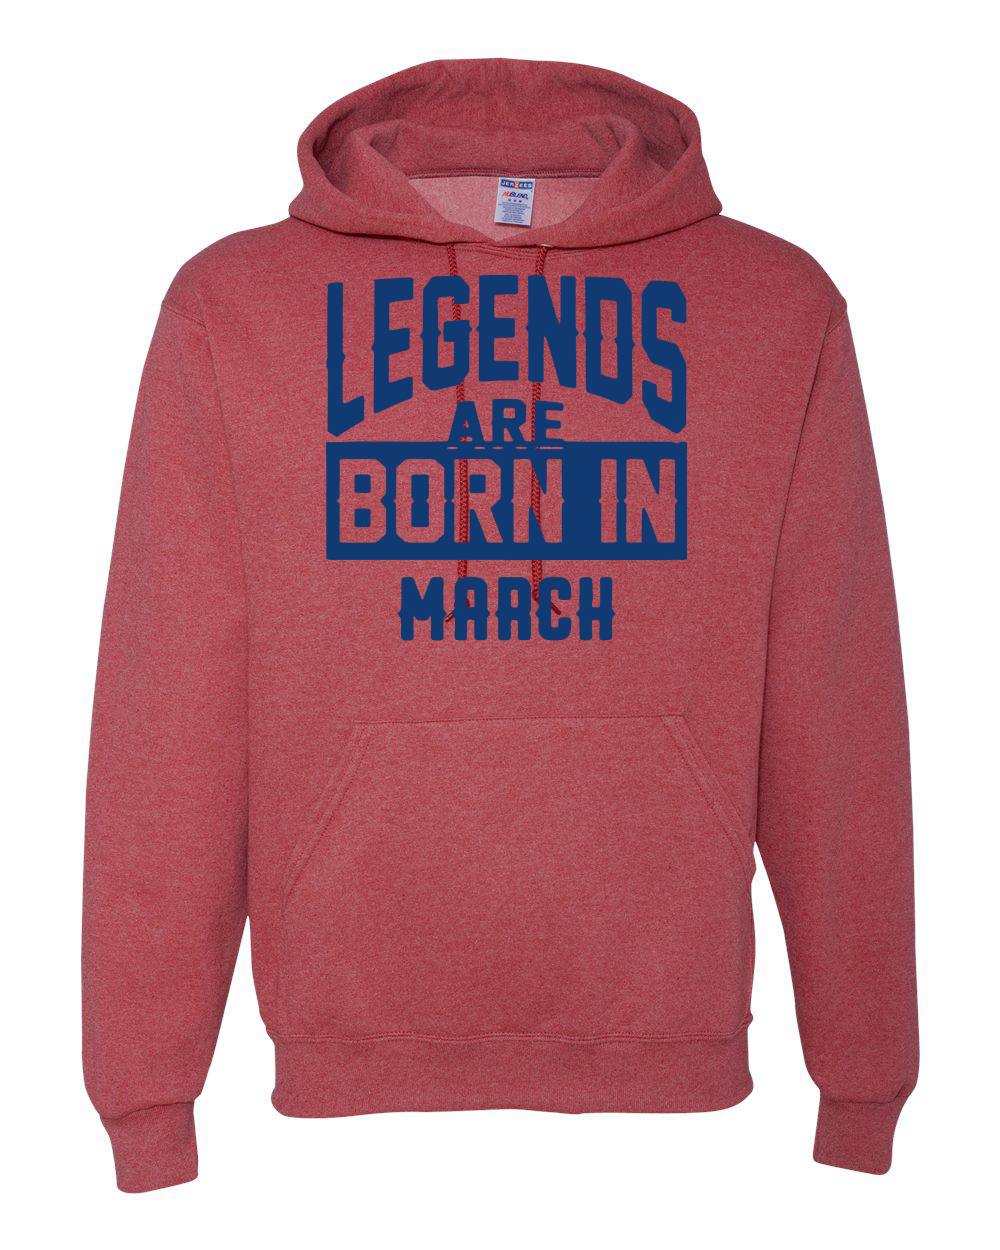 be777eaa5 Legends Are Born In March Mens Birthday Sweatshirt Anniversary ...